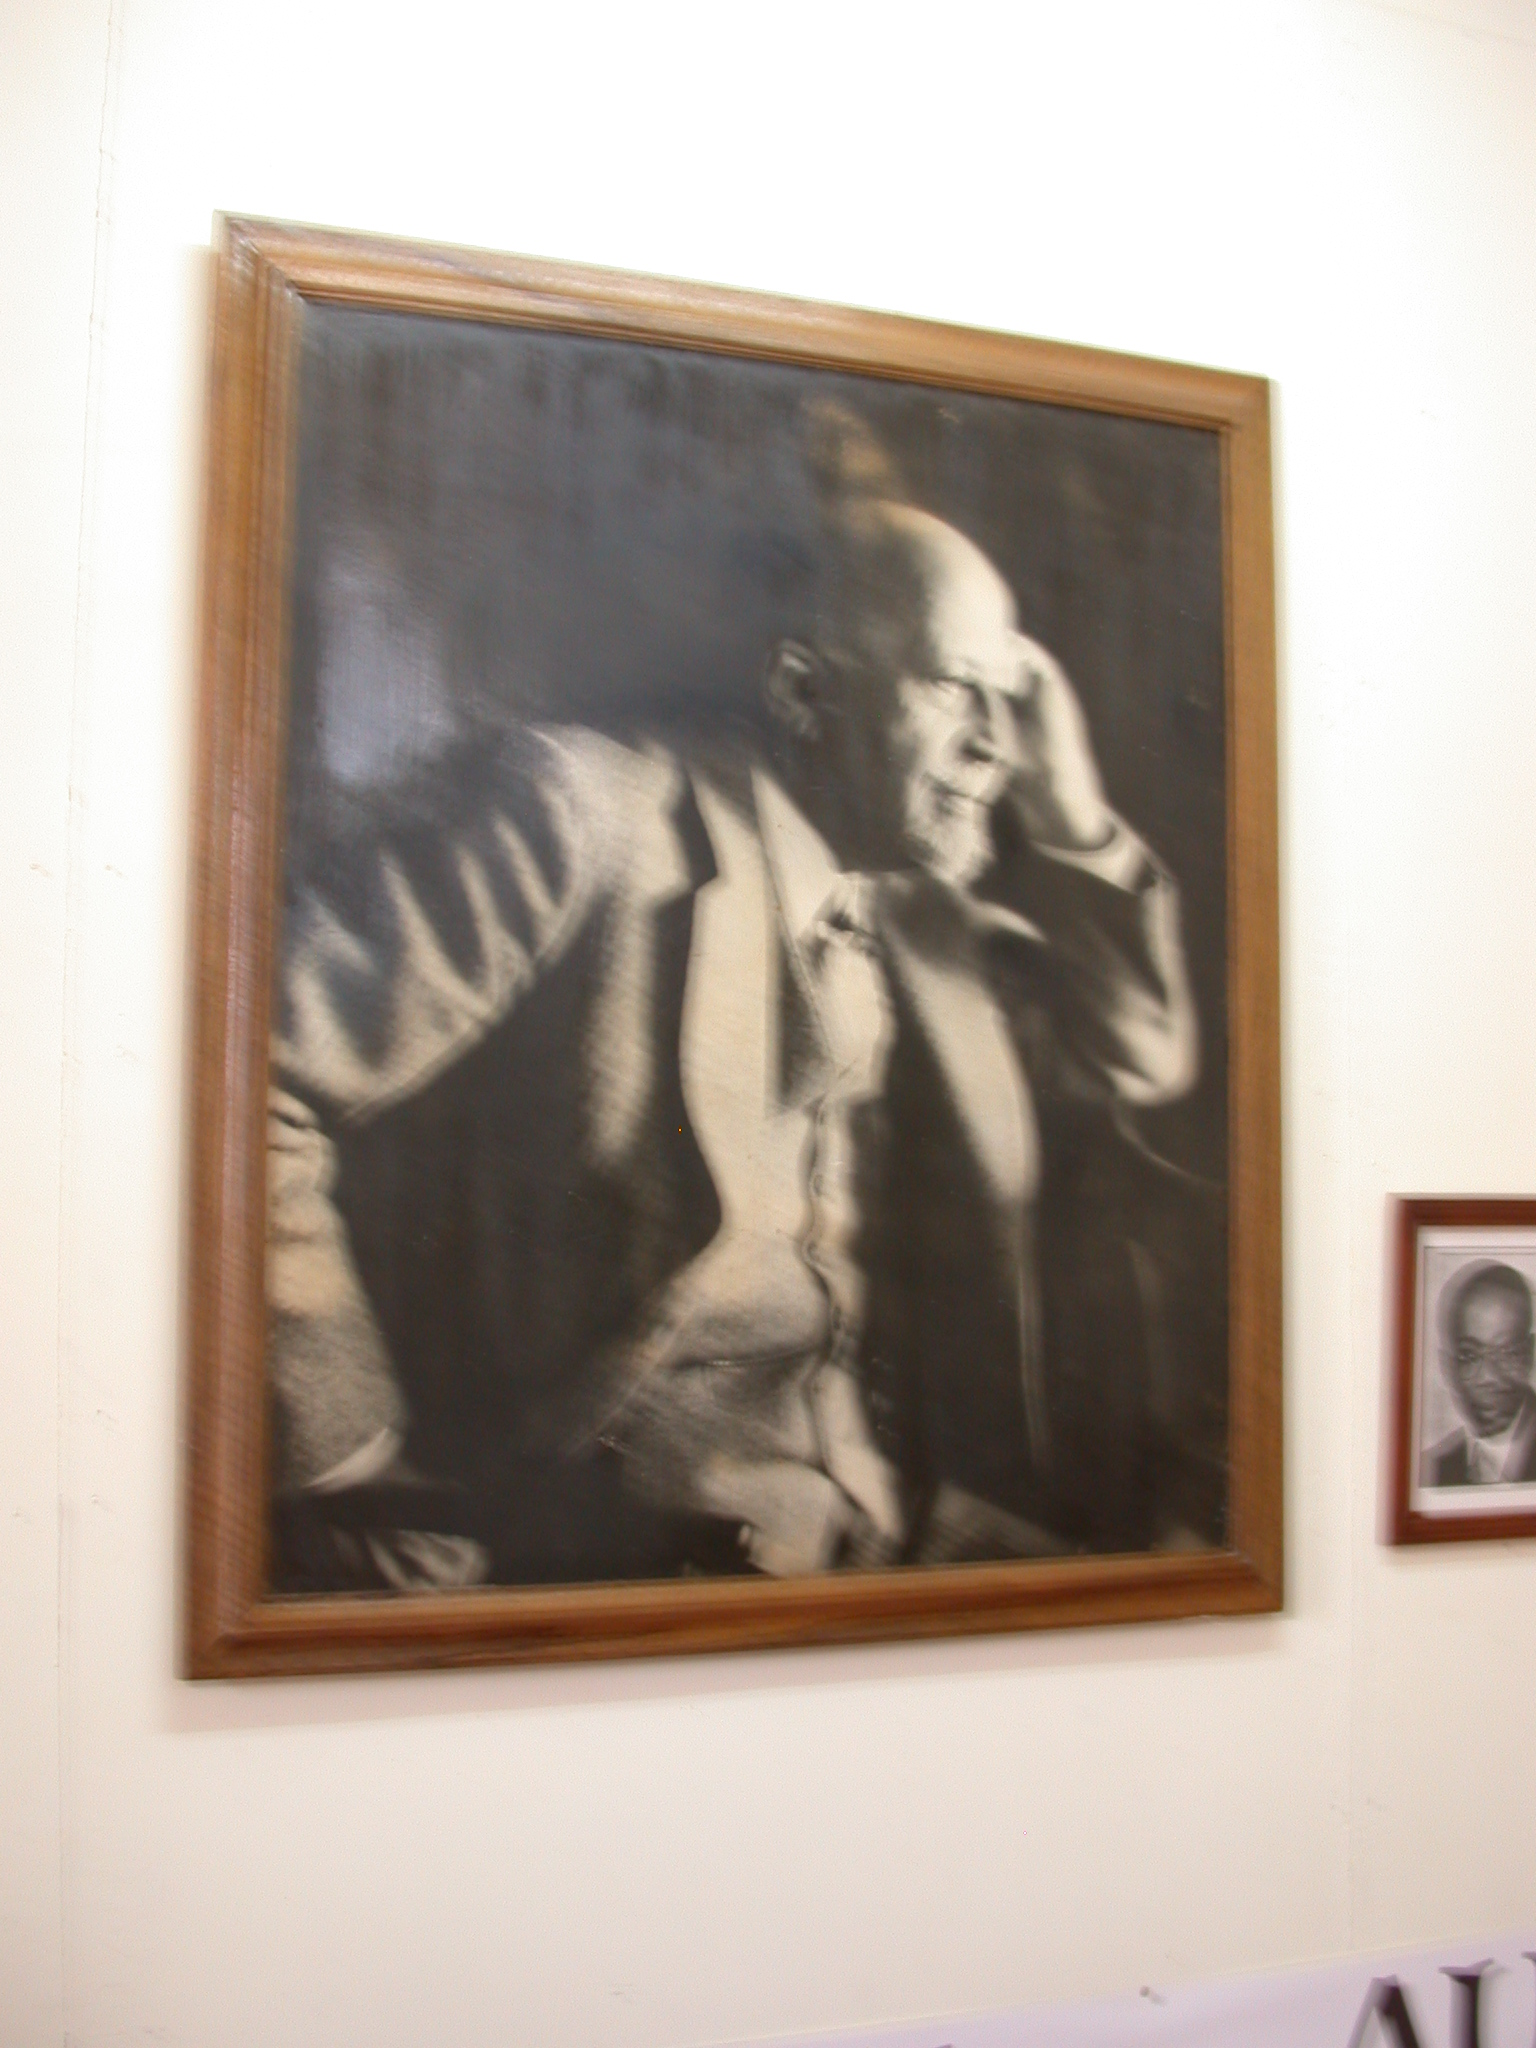 Photograph of WEB DuBois, WEB DuBois Memorial Centre for Pan African Culture, Accra, Ghana